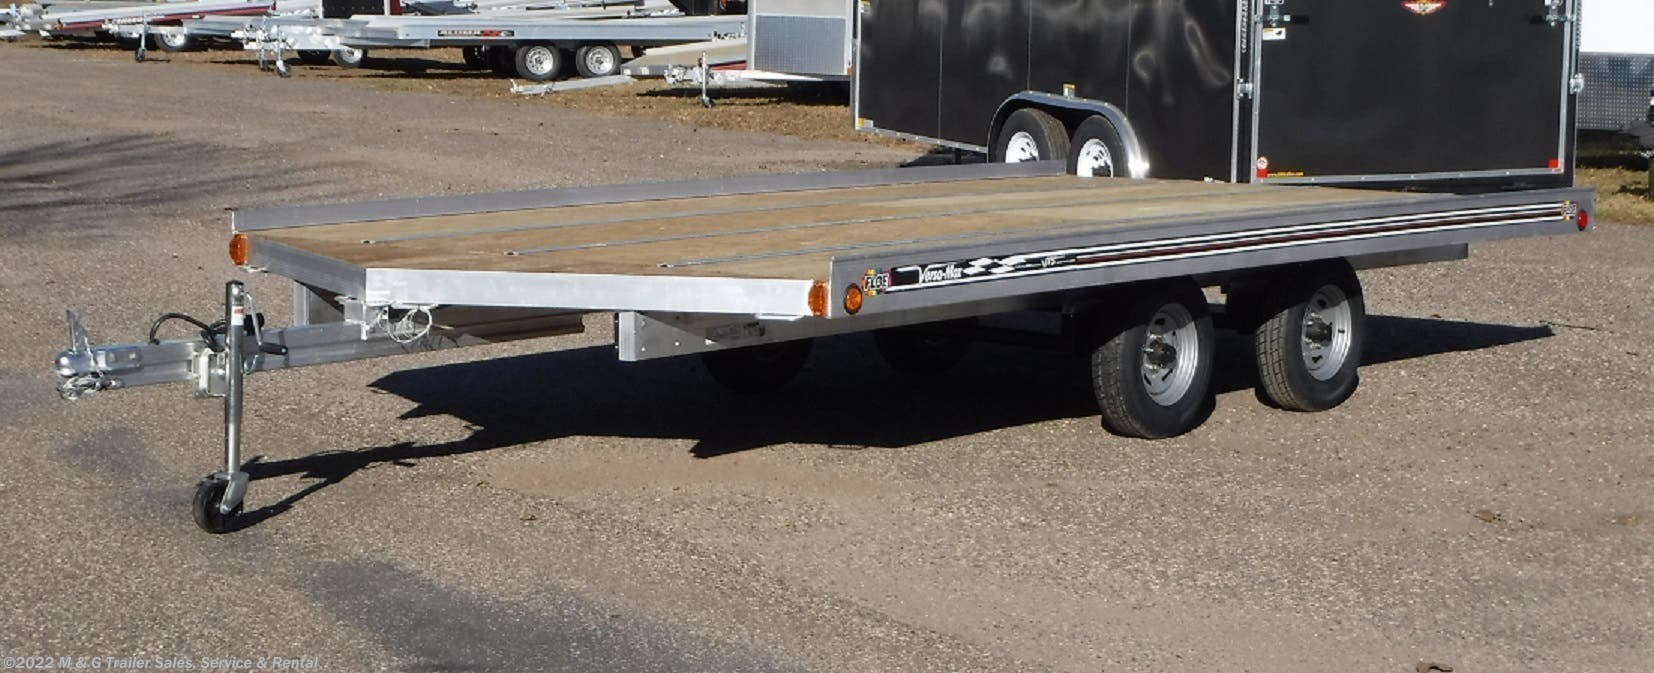 2021 FLOE Versa Max 16' Snowmobile Trailer - Stock #M002009